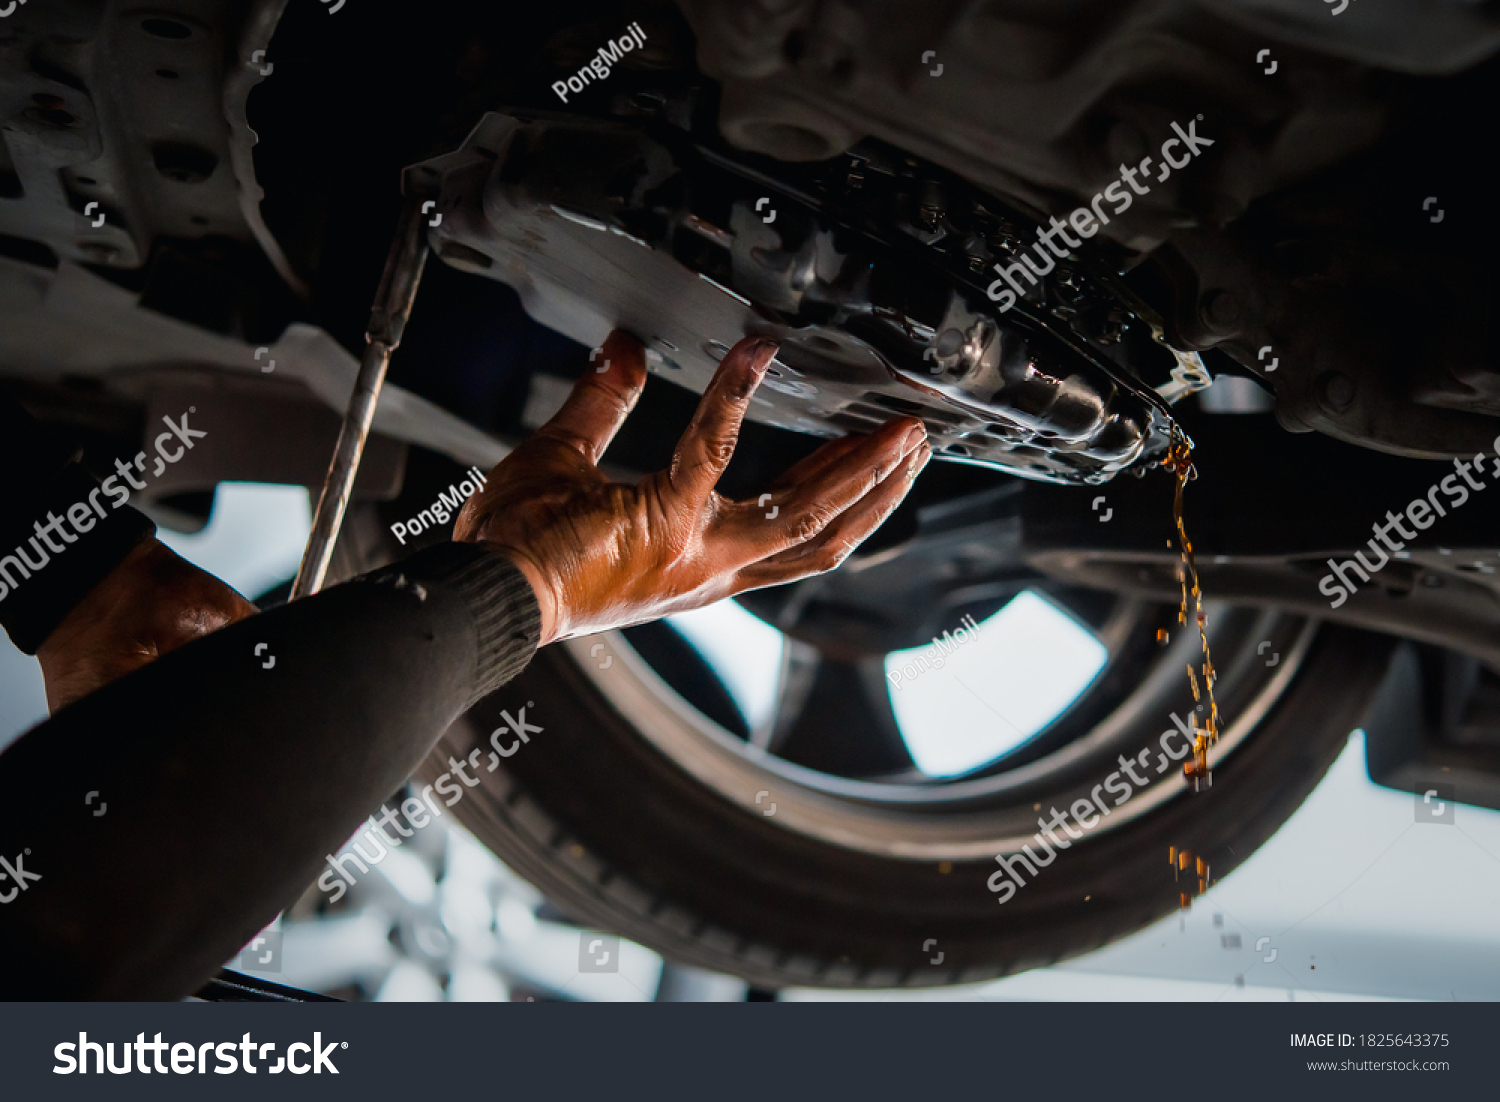 Car mechanic drain the old automatic transmission fluid (ATF) or gear oil at car garage for changing the oil in a gear box of car engine #1825643375